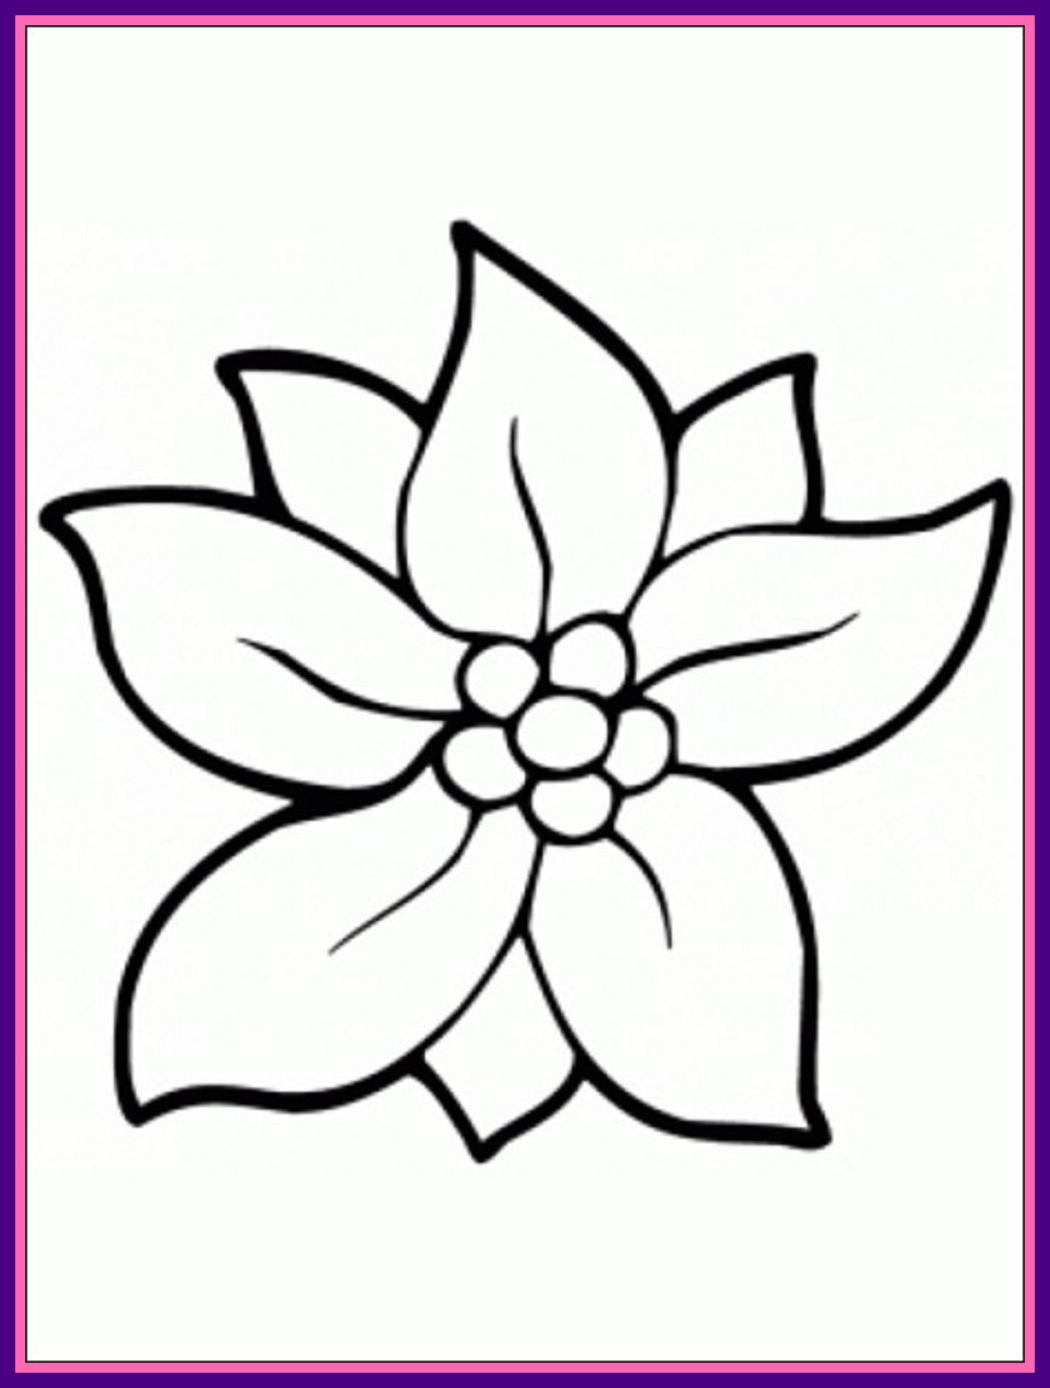 Images Of Flowers Colouring Pages at GetDrawings.com | Free for ...